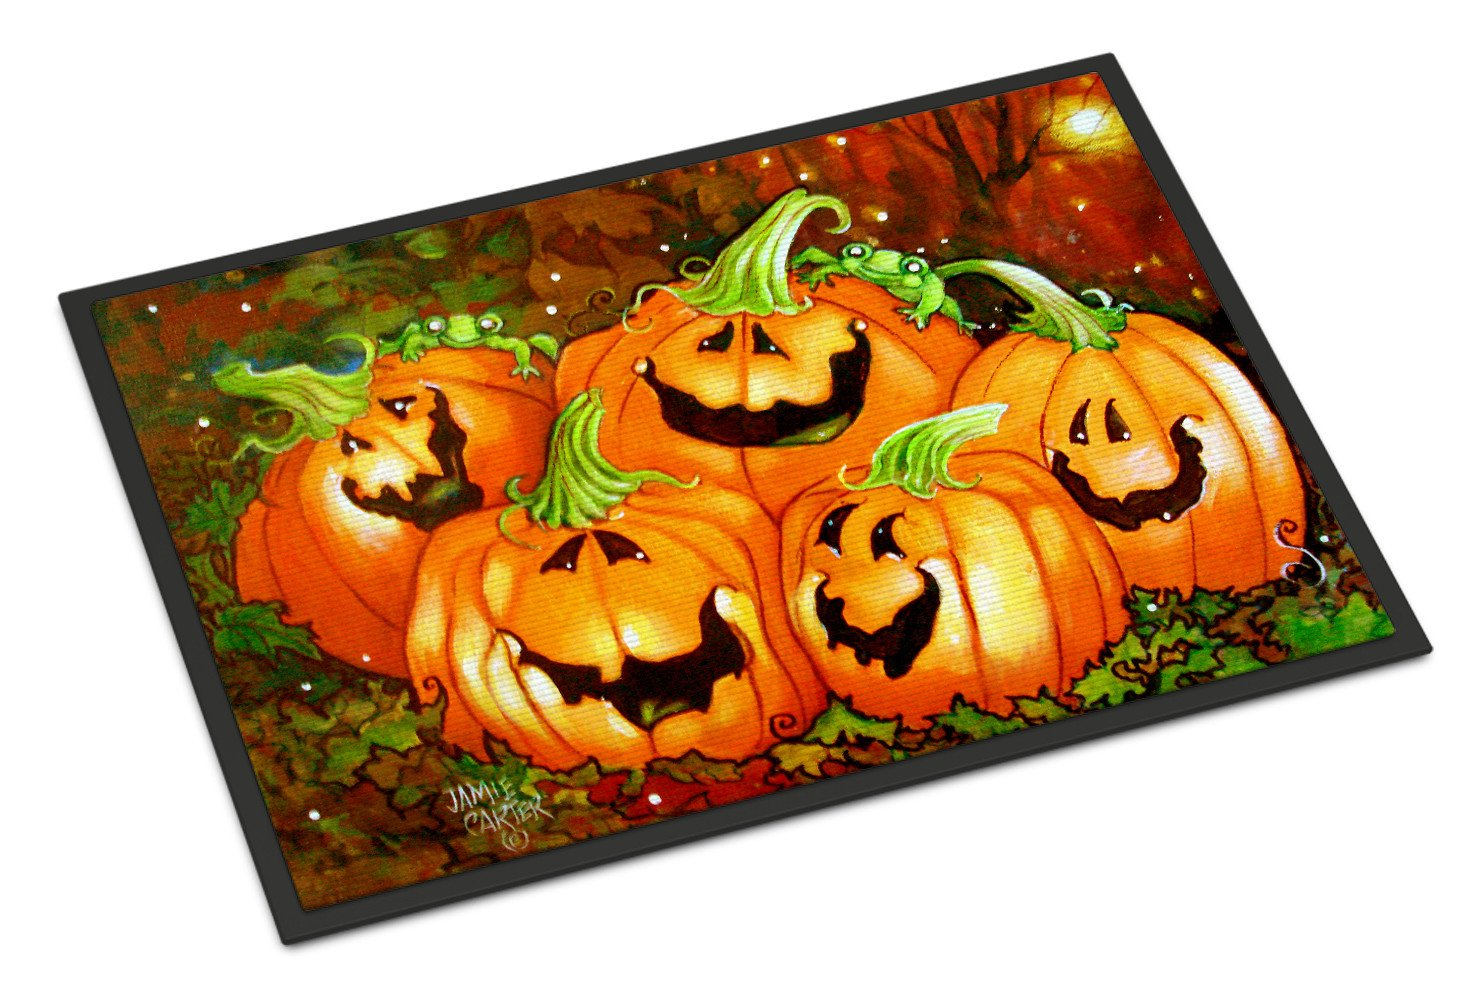 Such a Glowing Personality Pumpkin Halloween Indoor or Outdoor Mat 18x27 PJC1071MAT by Caroline's Treasures